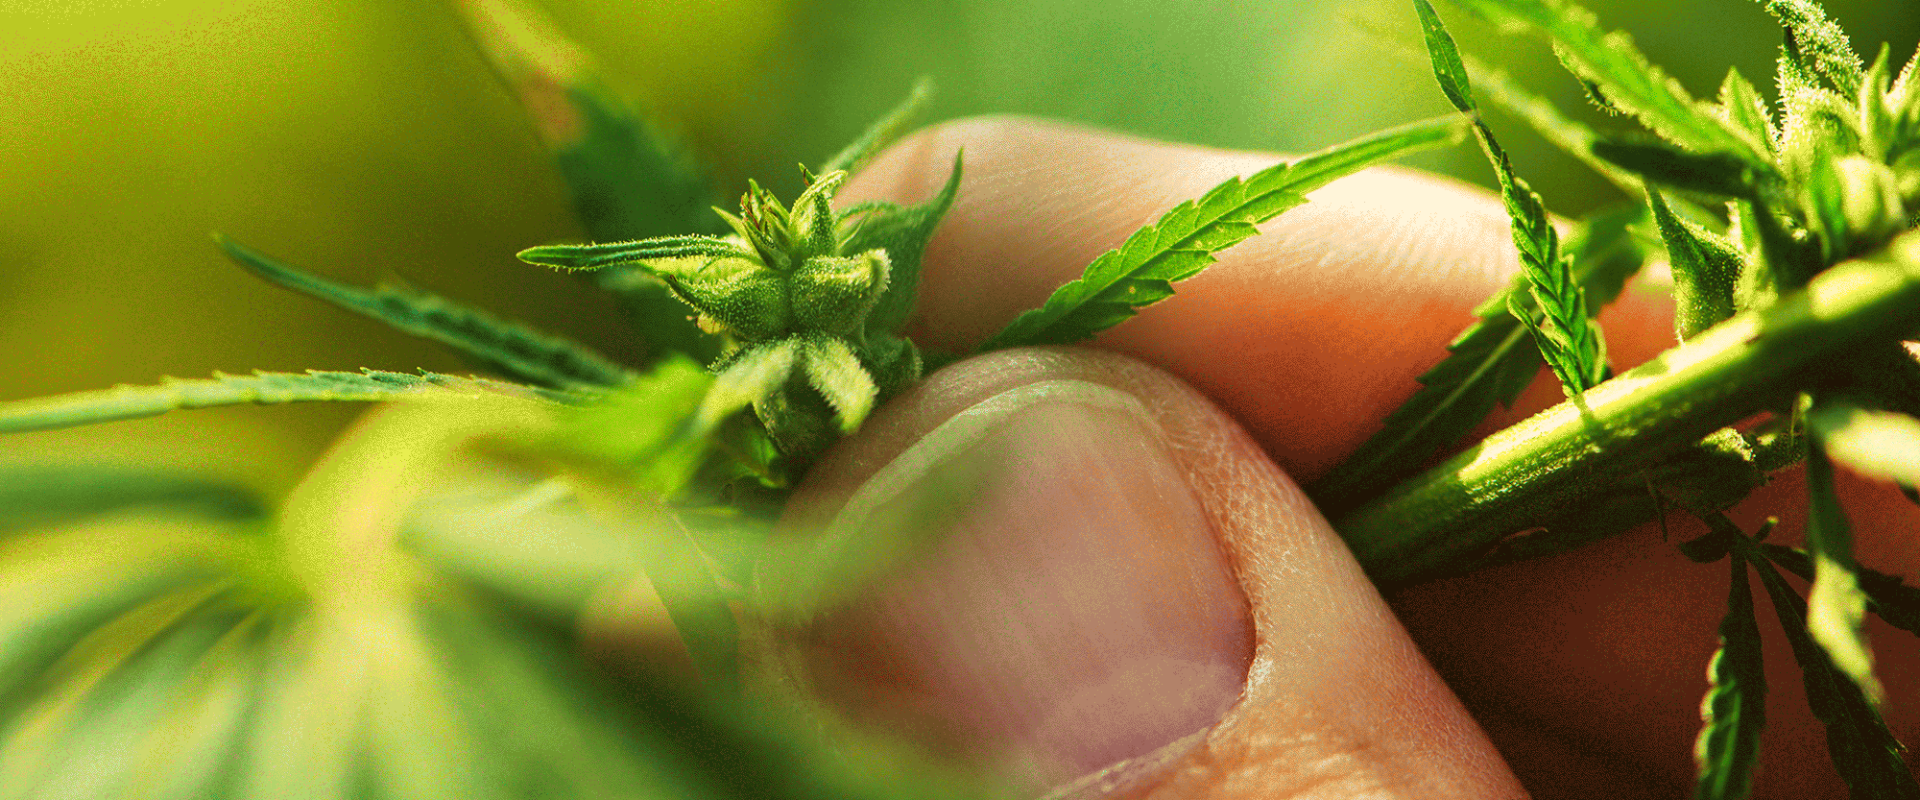 CBD and CBG can help you relax without the THC psychoactive part of the marijuana plant.